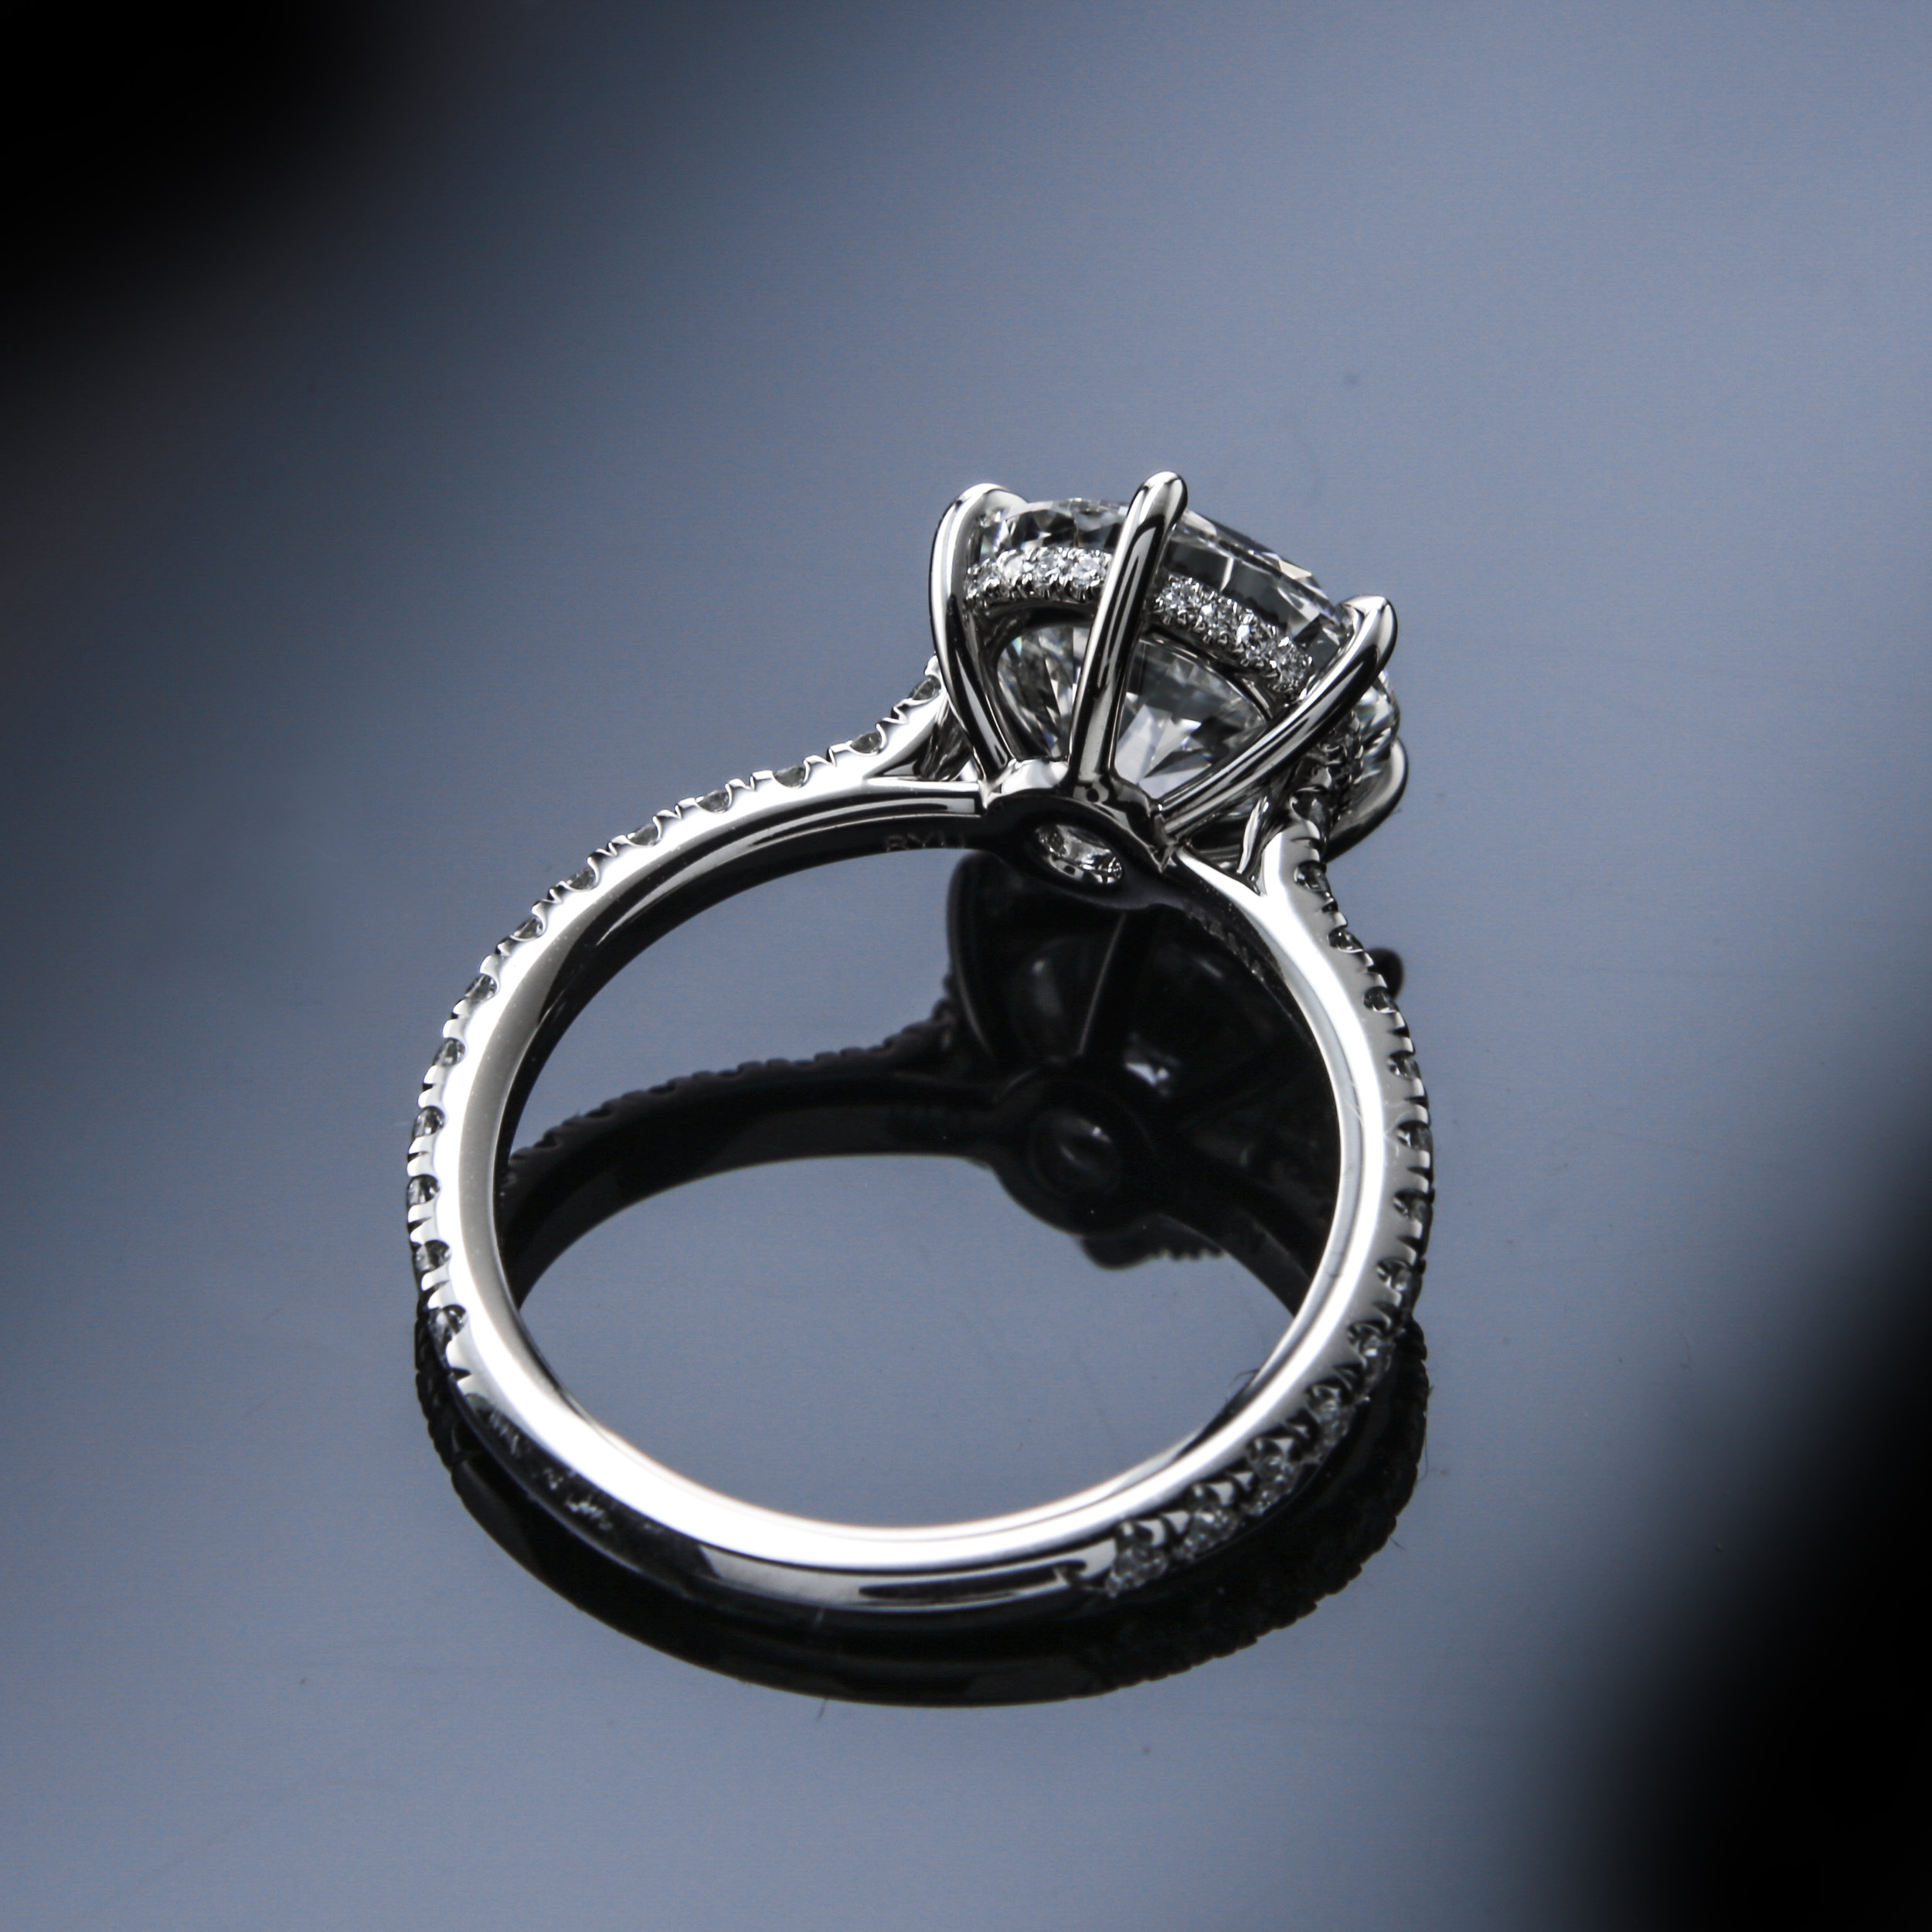 Solitaire Engagement Ring - 2017 Engagement Ring Trends featuring Black by Brian Gavin